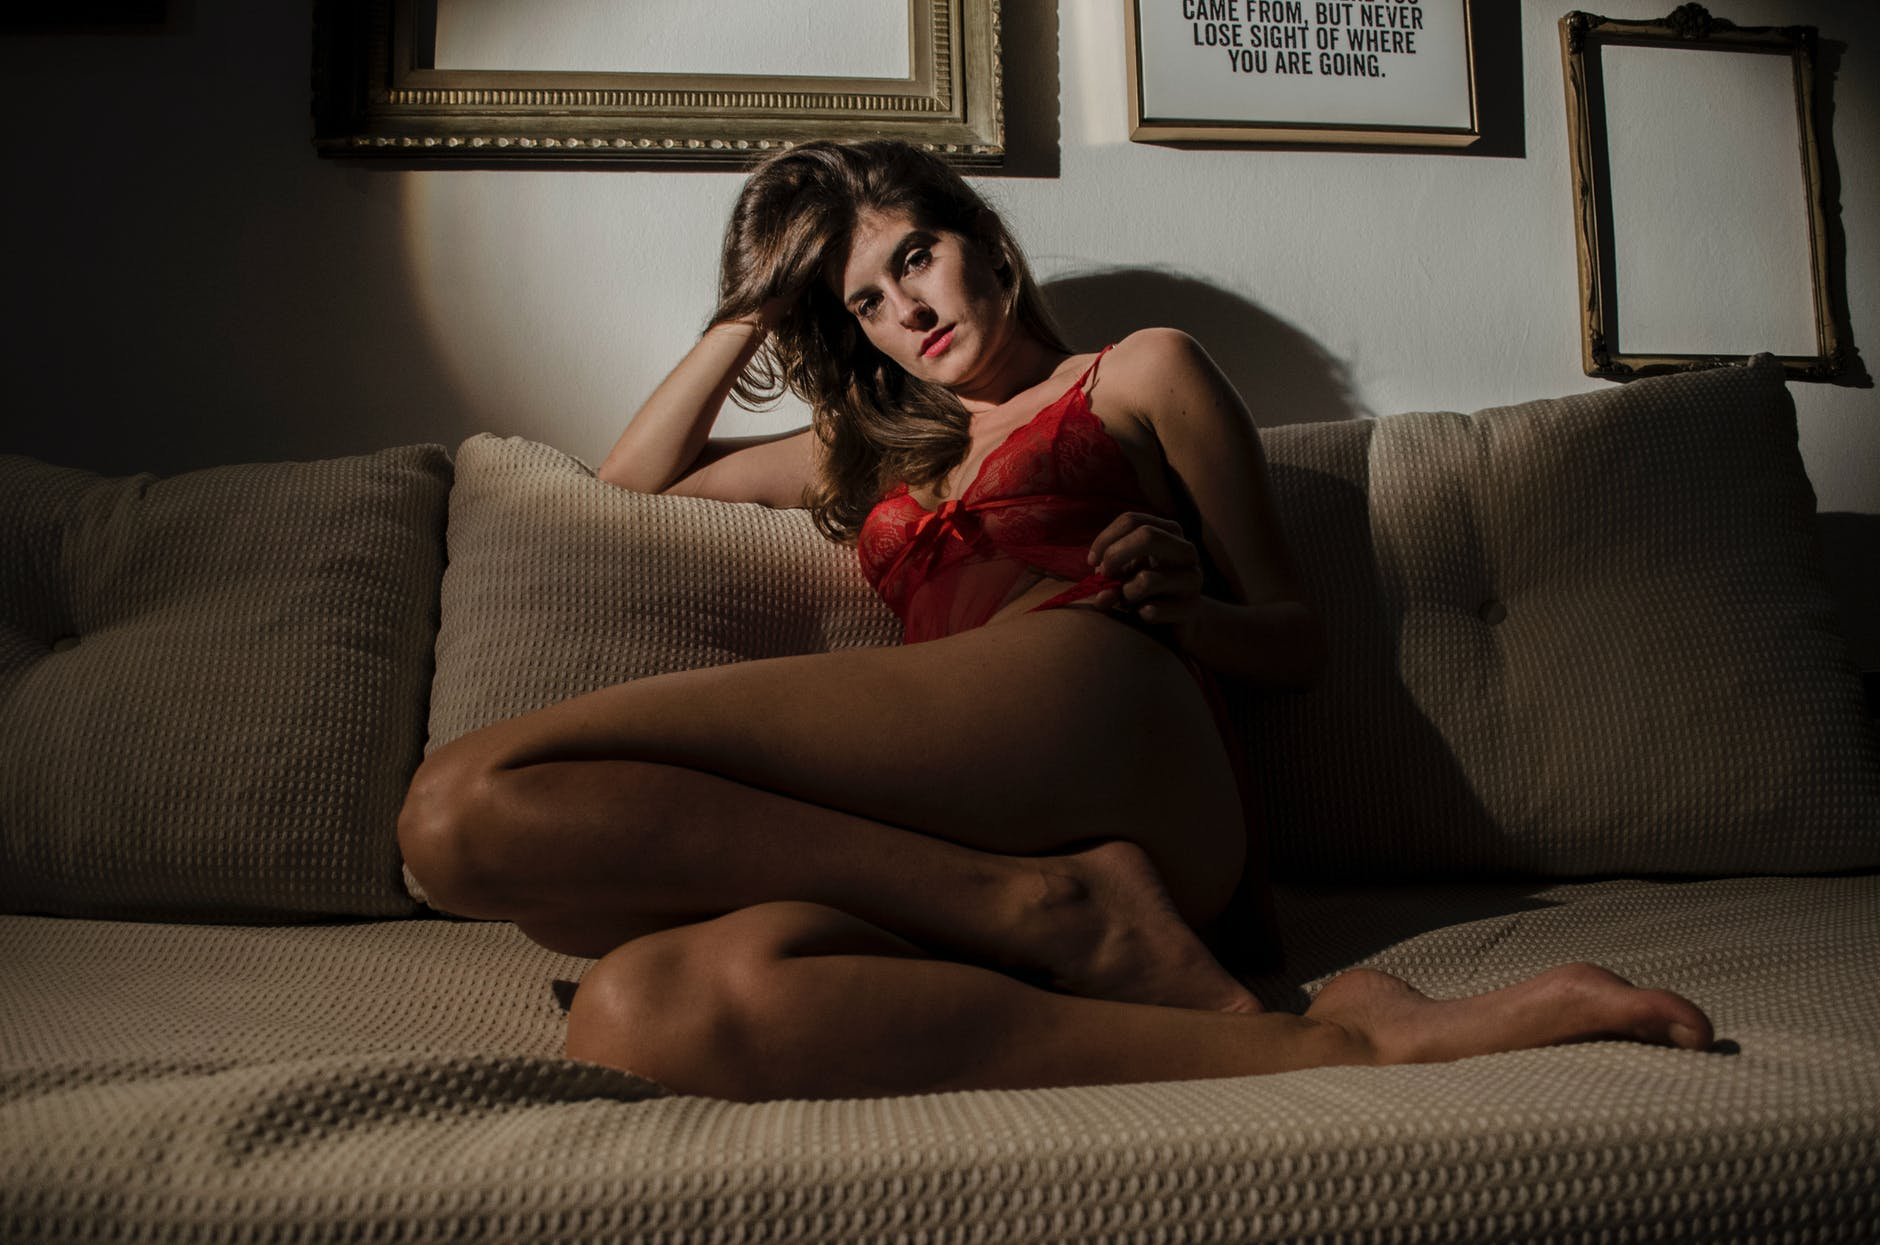 woman in red lingerie sitting on couch